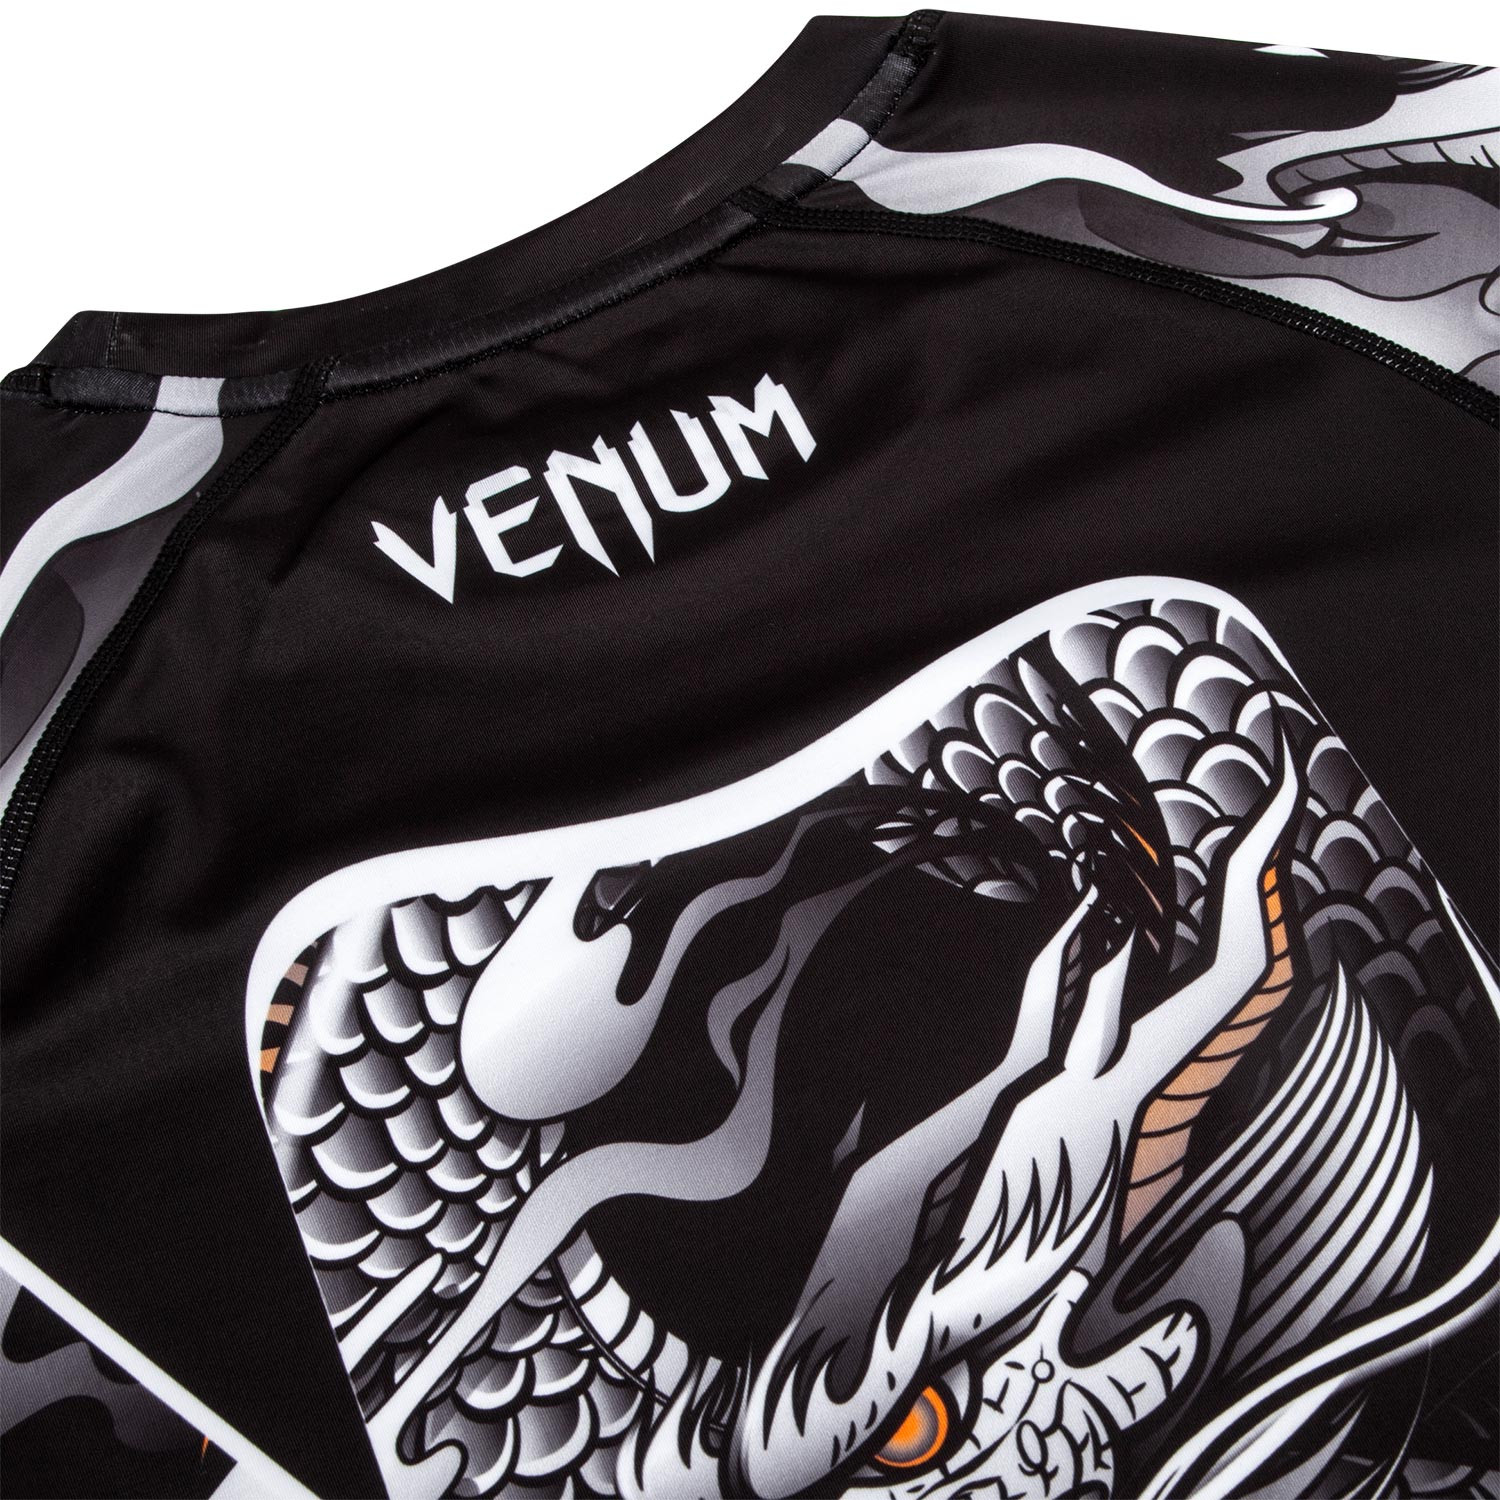 Рашгард Venum Dragon's Flight Black/White S/S